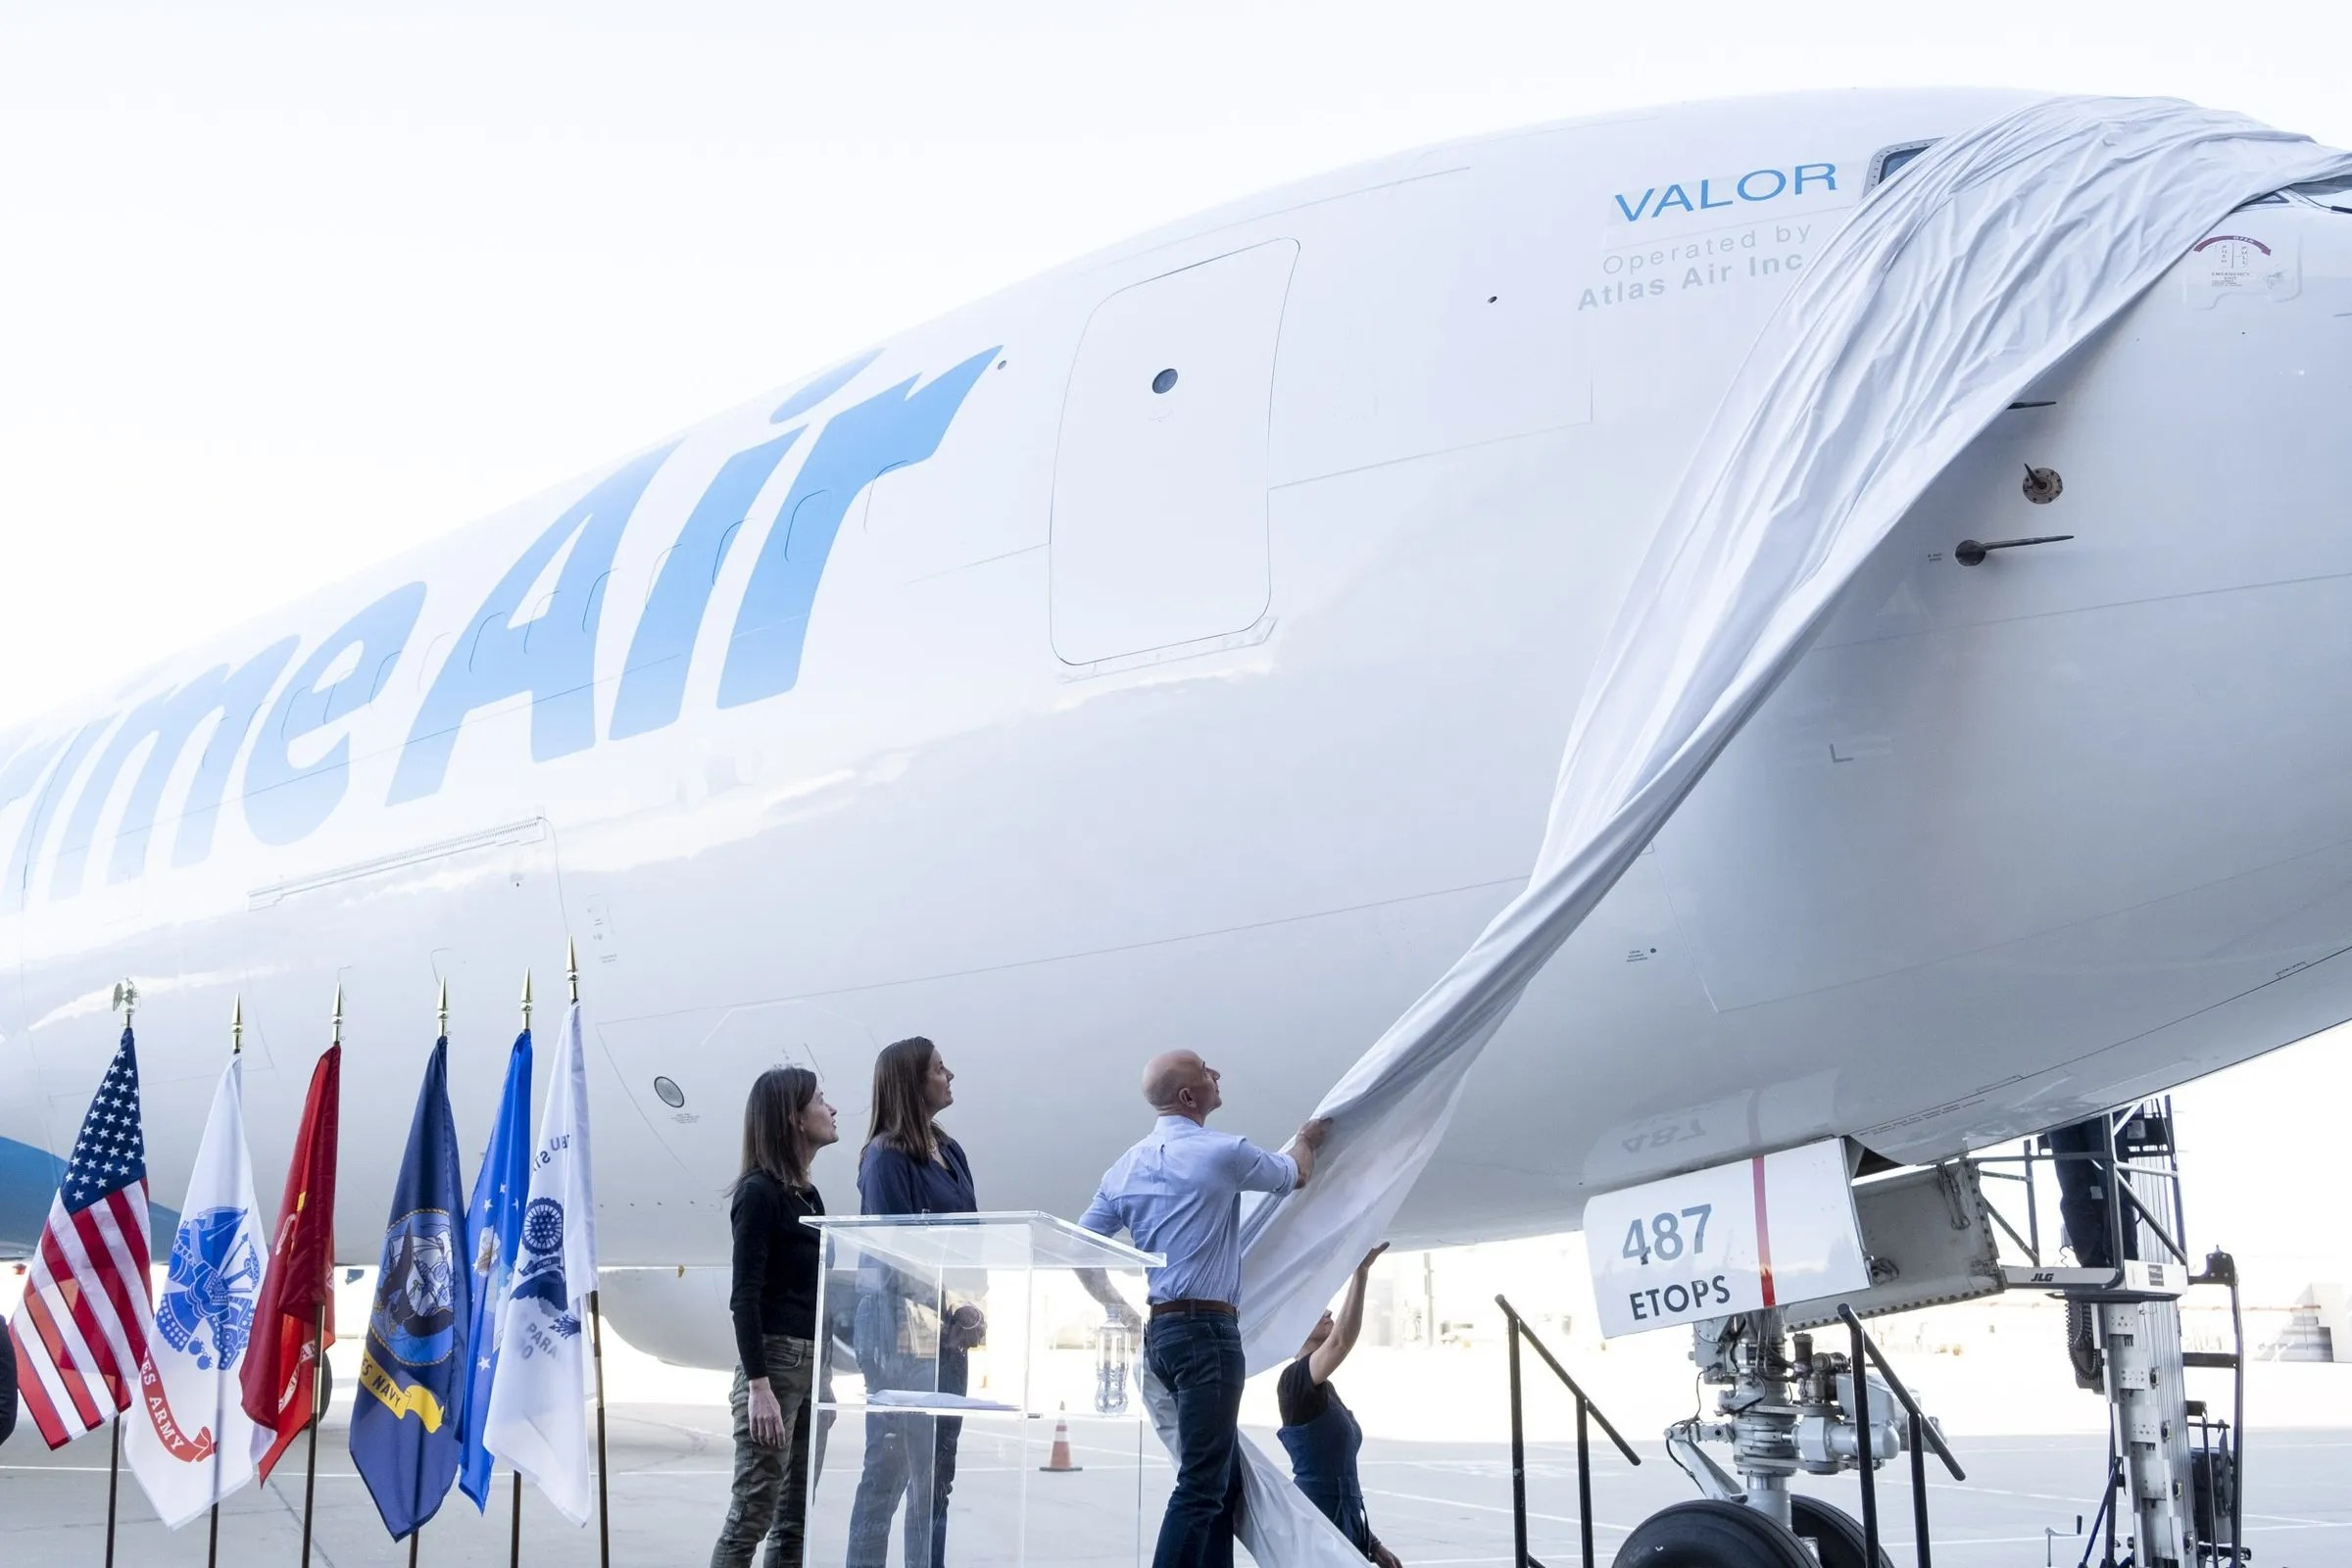 Amazon Air may be on the hunt for more cargo planes as it takes